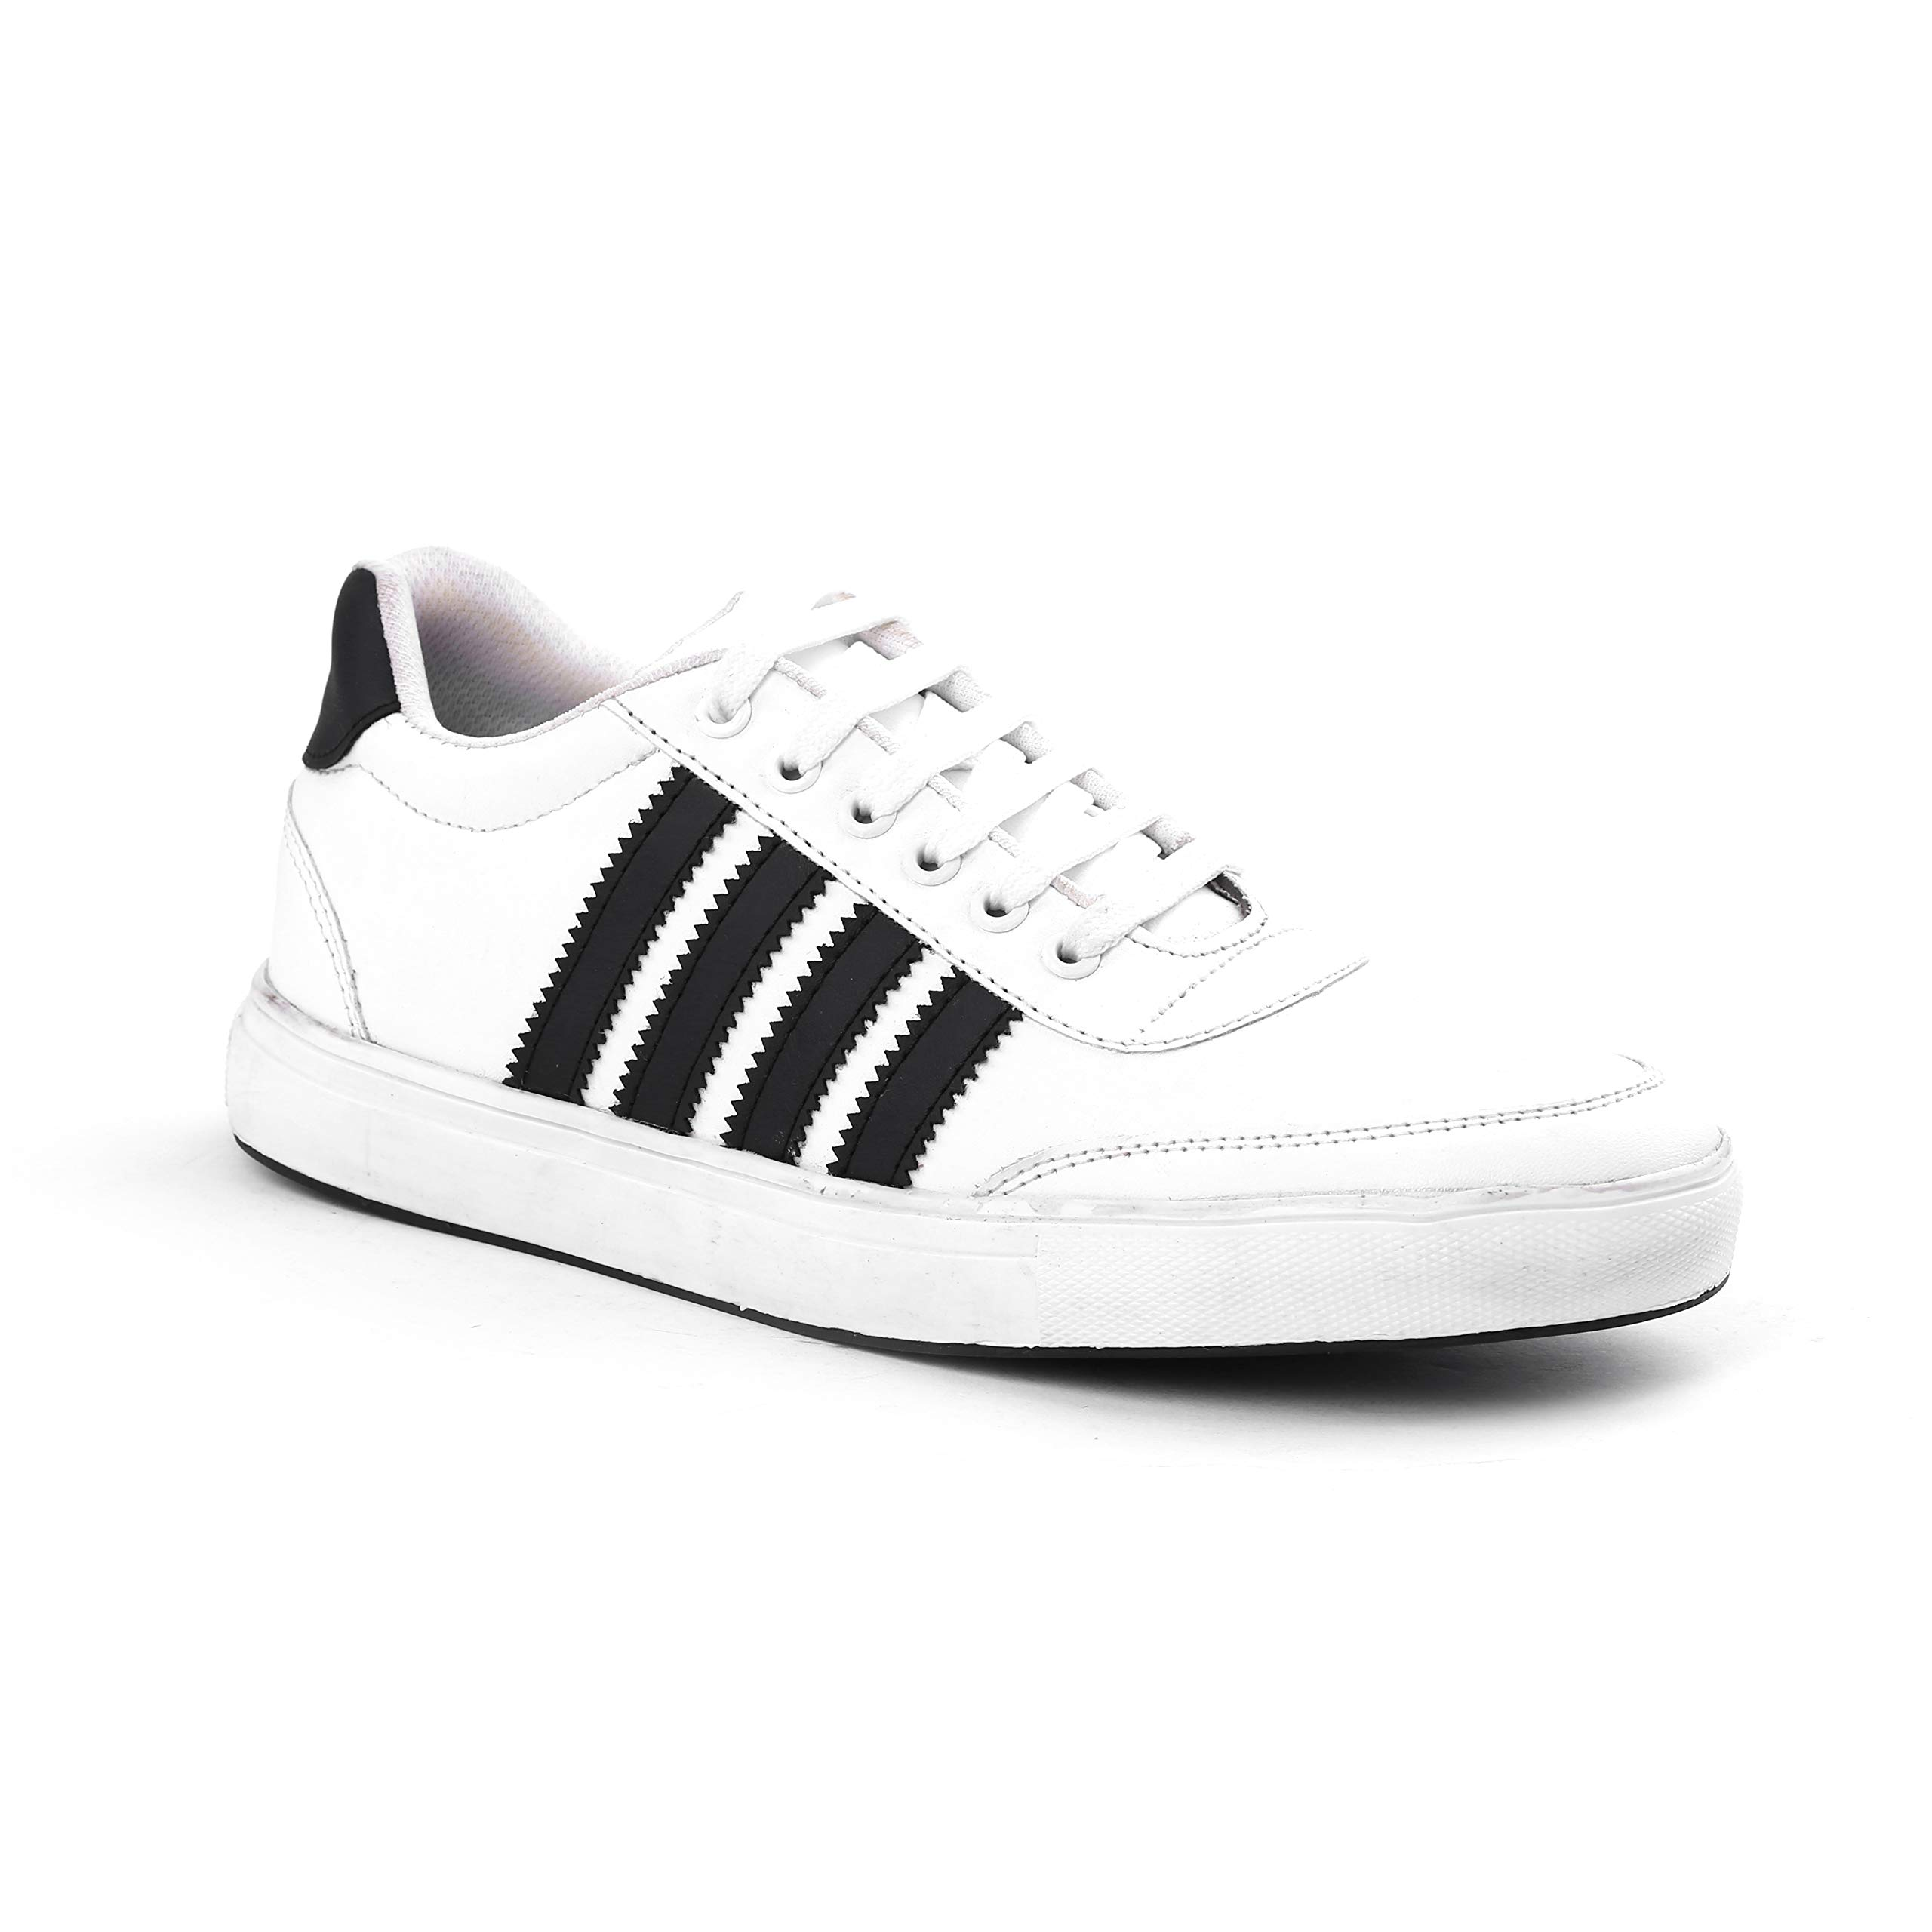 Adidas NEO Men's Sneakers Classic All Match Lightweight Antiskid Comfortable Casual Shoes